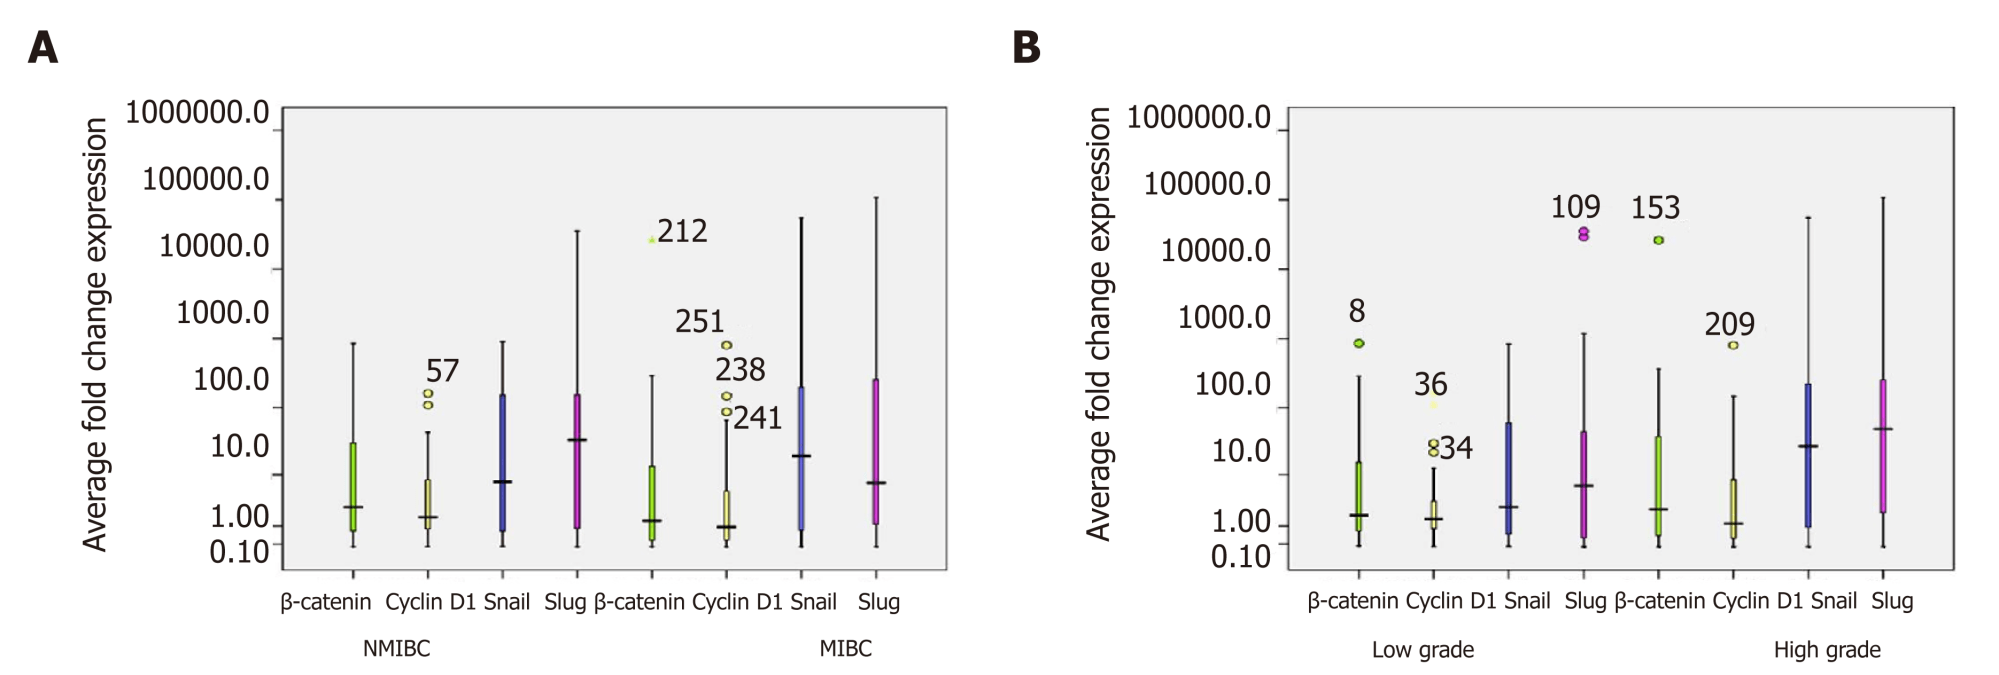 hight resolution of figure 5 box plot representation of quantitative expression profile of catenin and its target genes cyclin d1 snail and slug in a cohort of 90 urinary